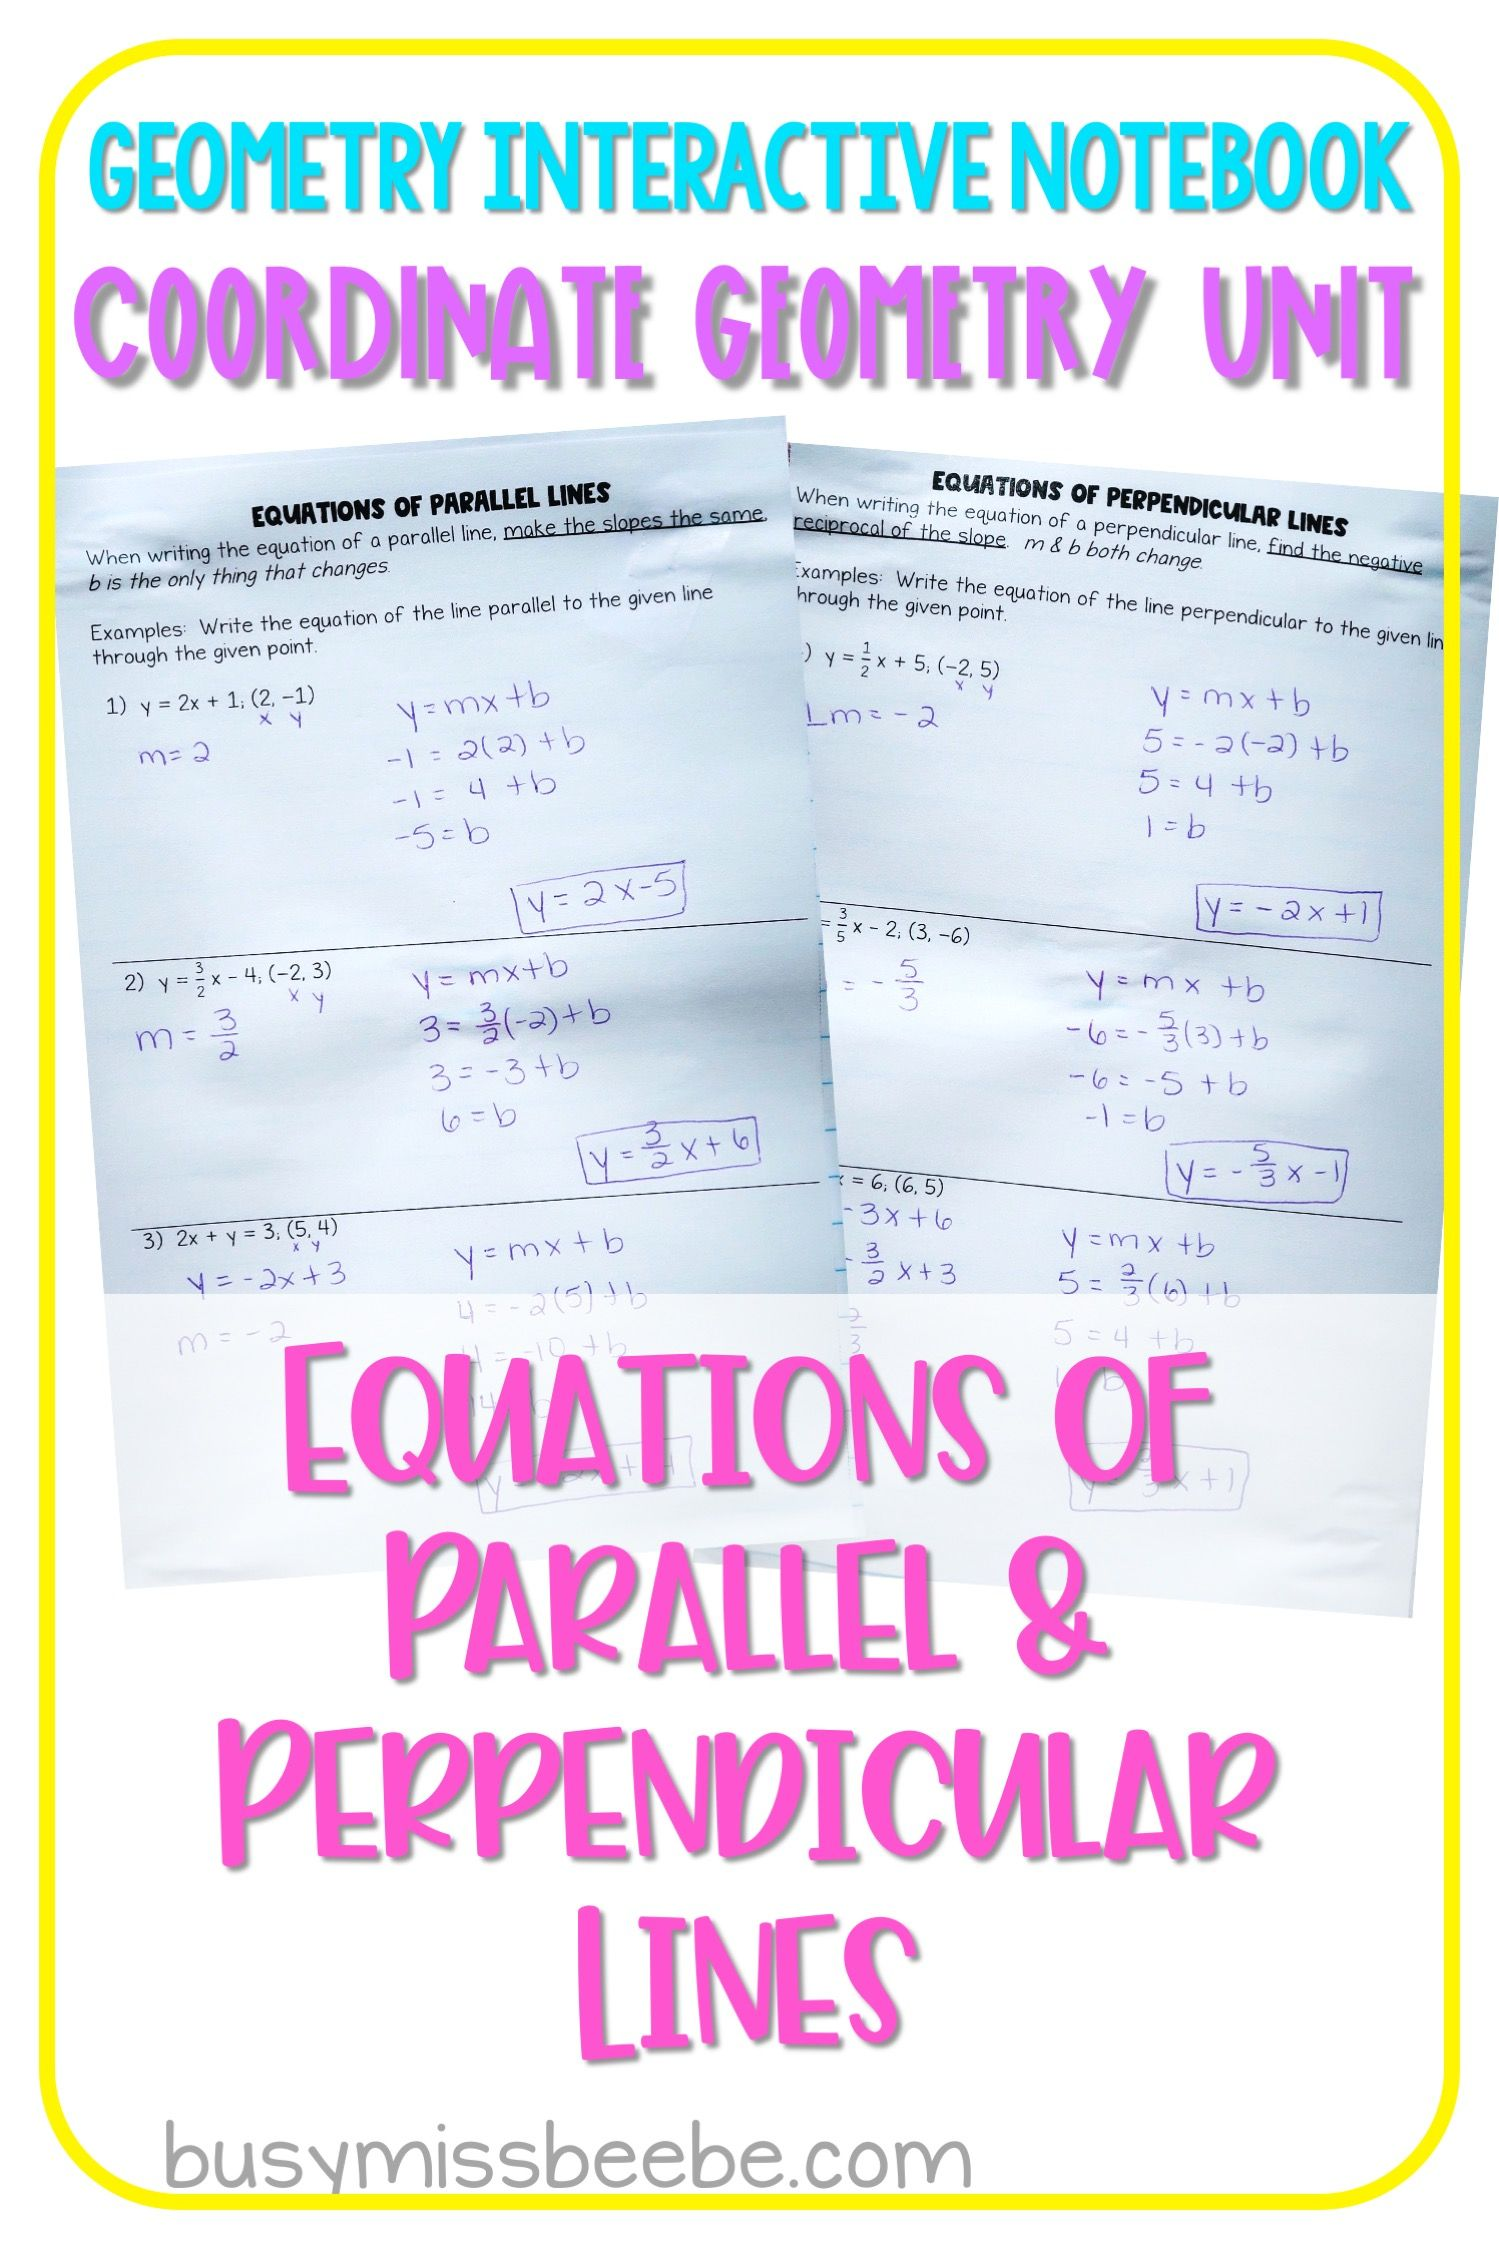 Equations Of Parallel Perpendicular Lines Geometry Interactive Notebook In 2020 Geometry Interactive Notebook Interactive Notebooks Coordinate Geometry